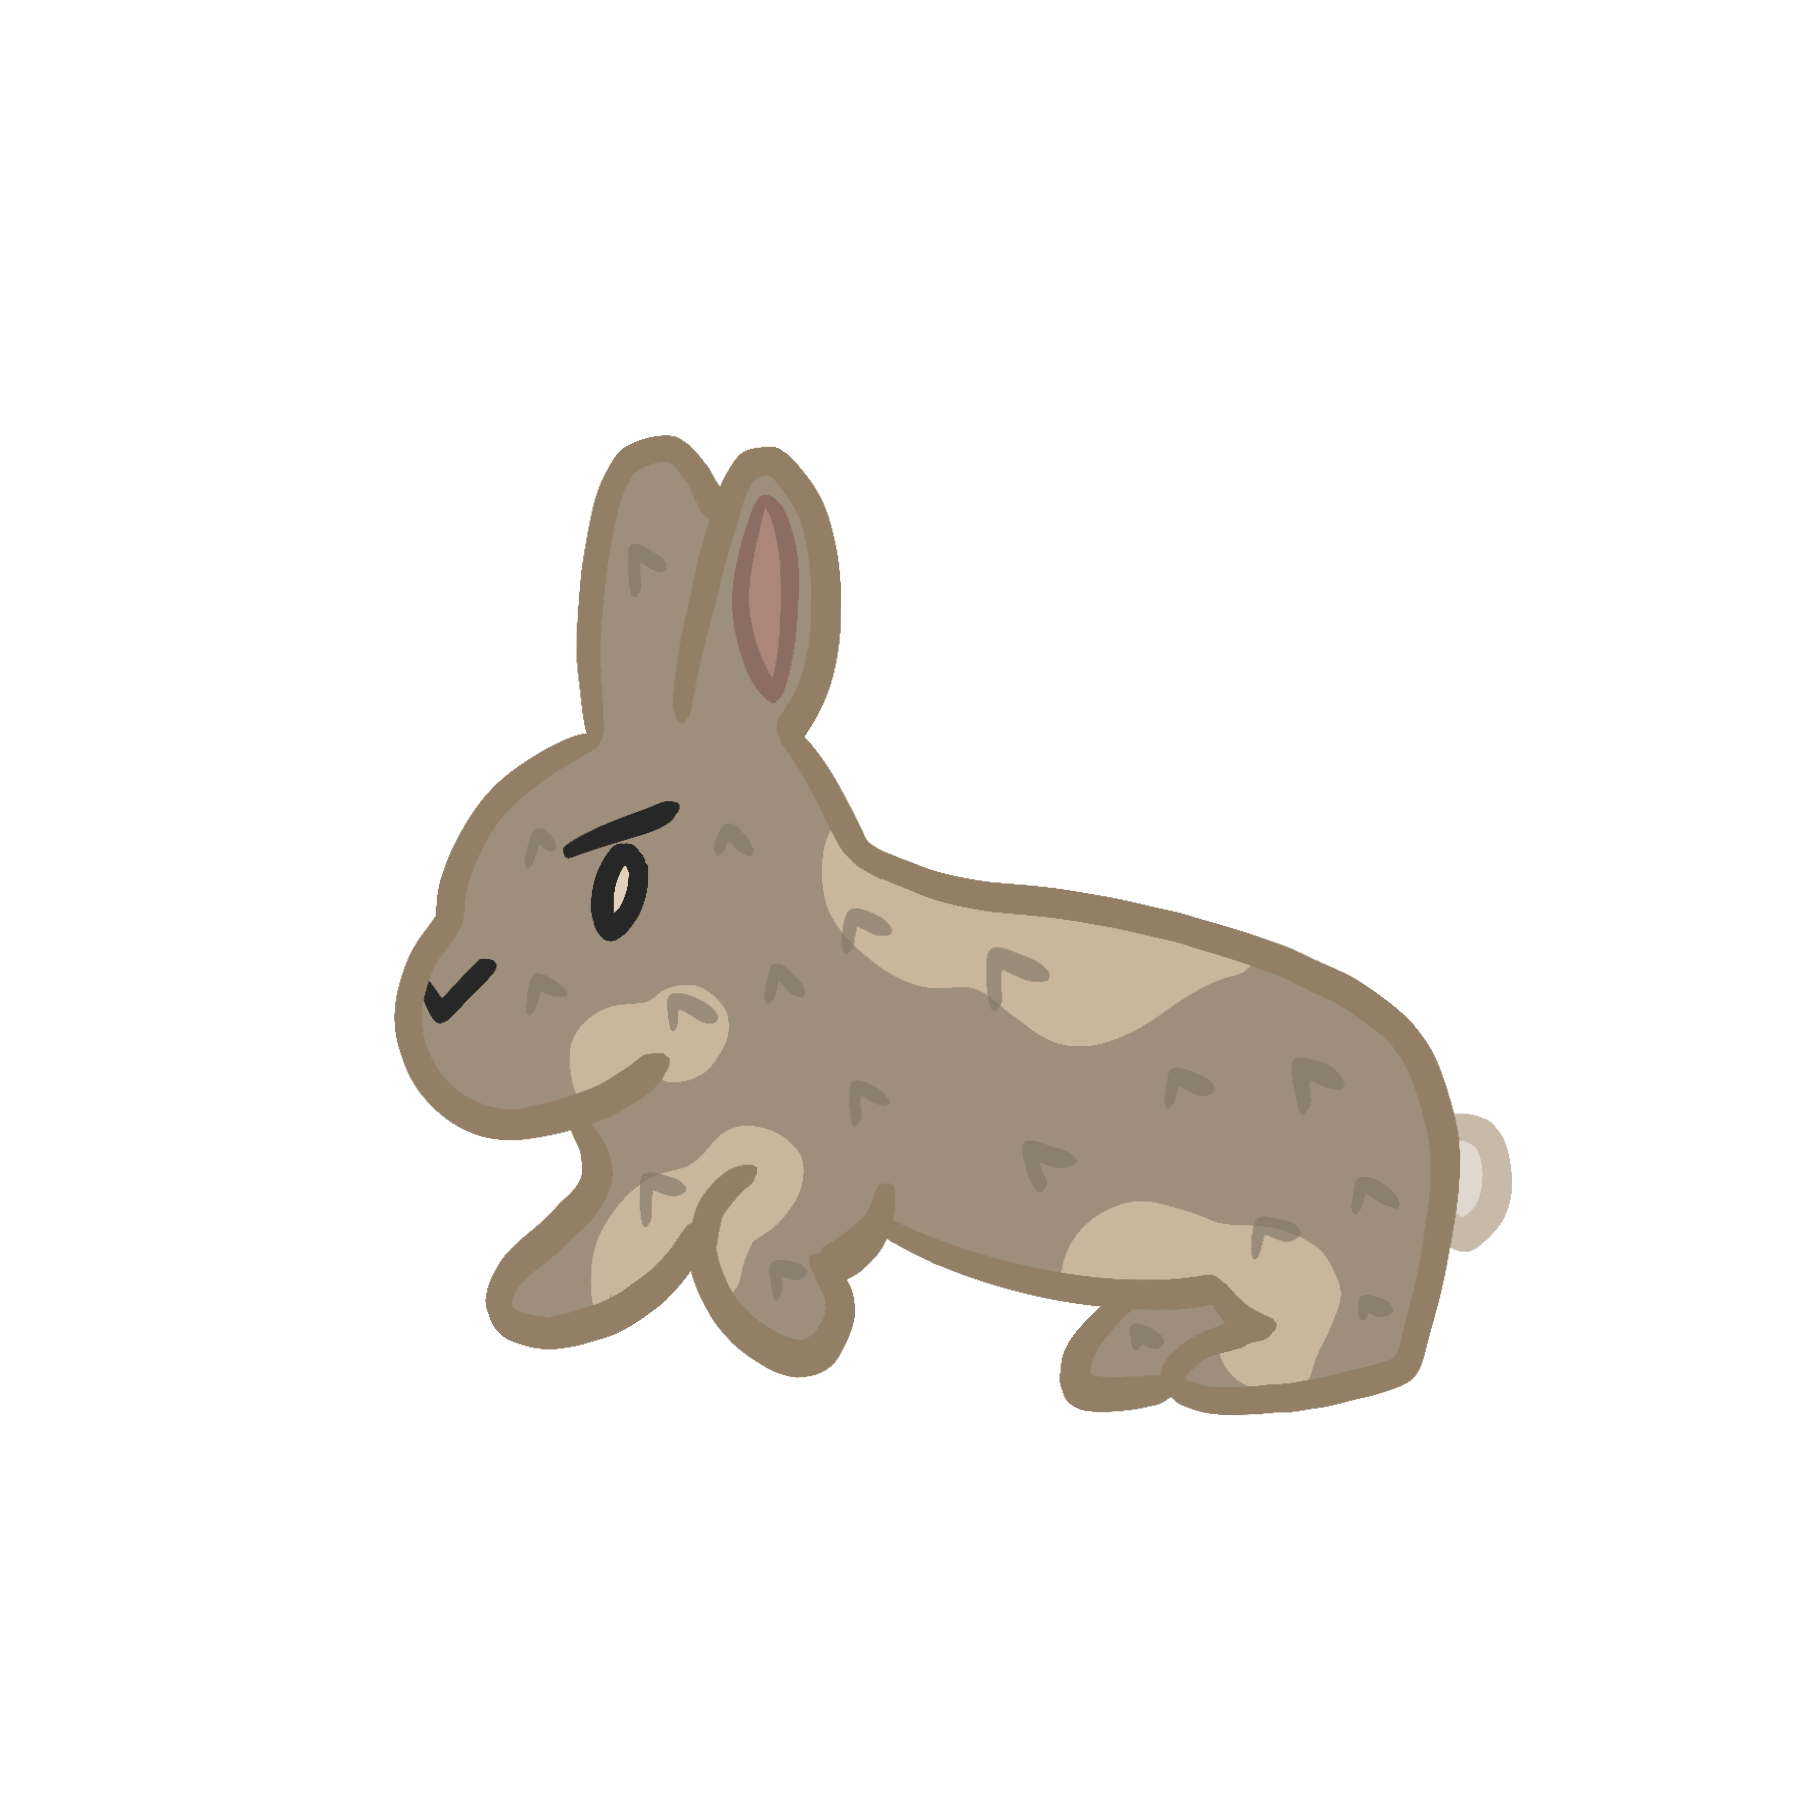 Image of a gray cartoon rabbit. On click it starts to jump.